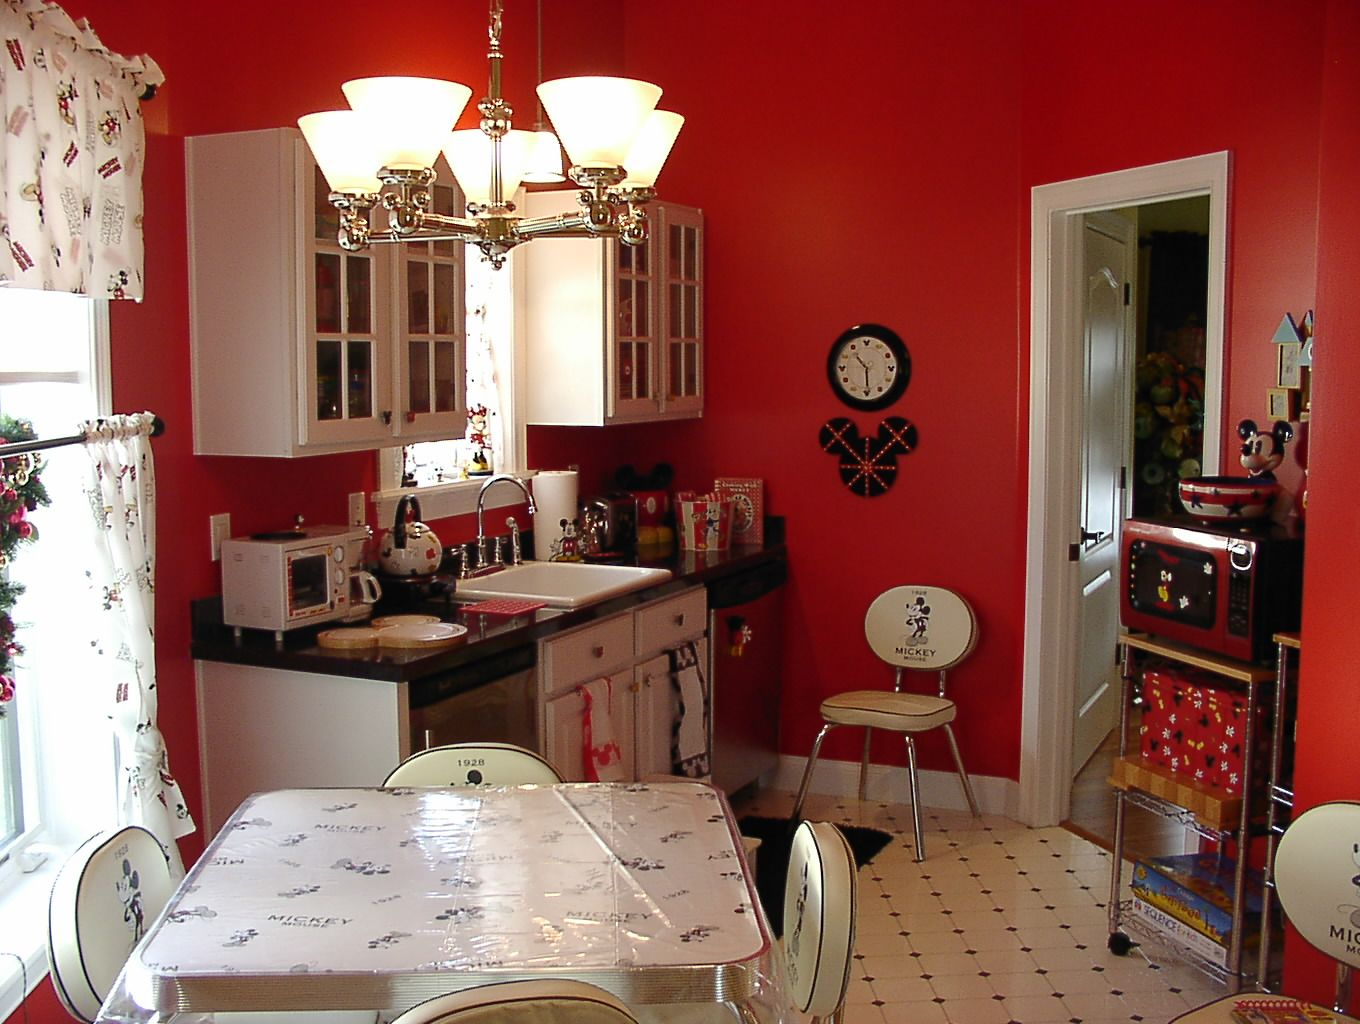 Sneak Peek at the Hidden Mickey Mouse House in Central Florida